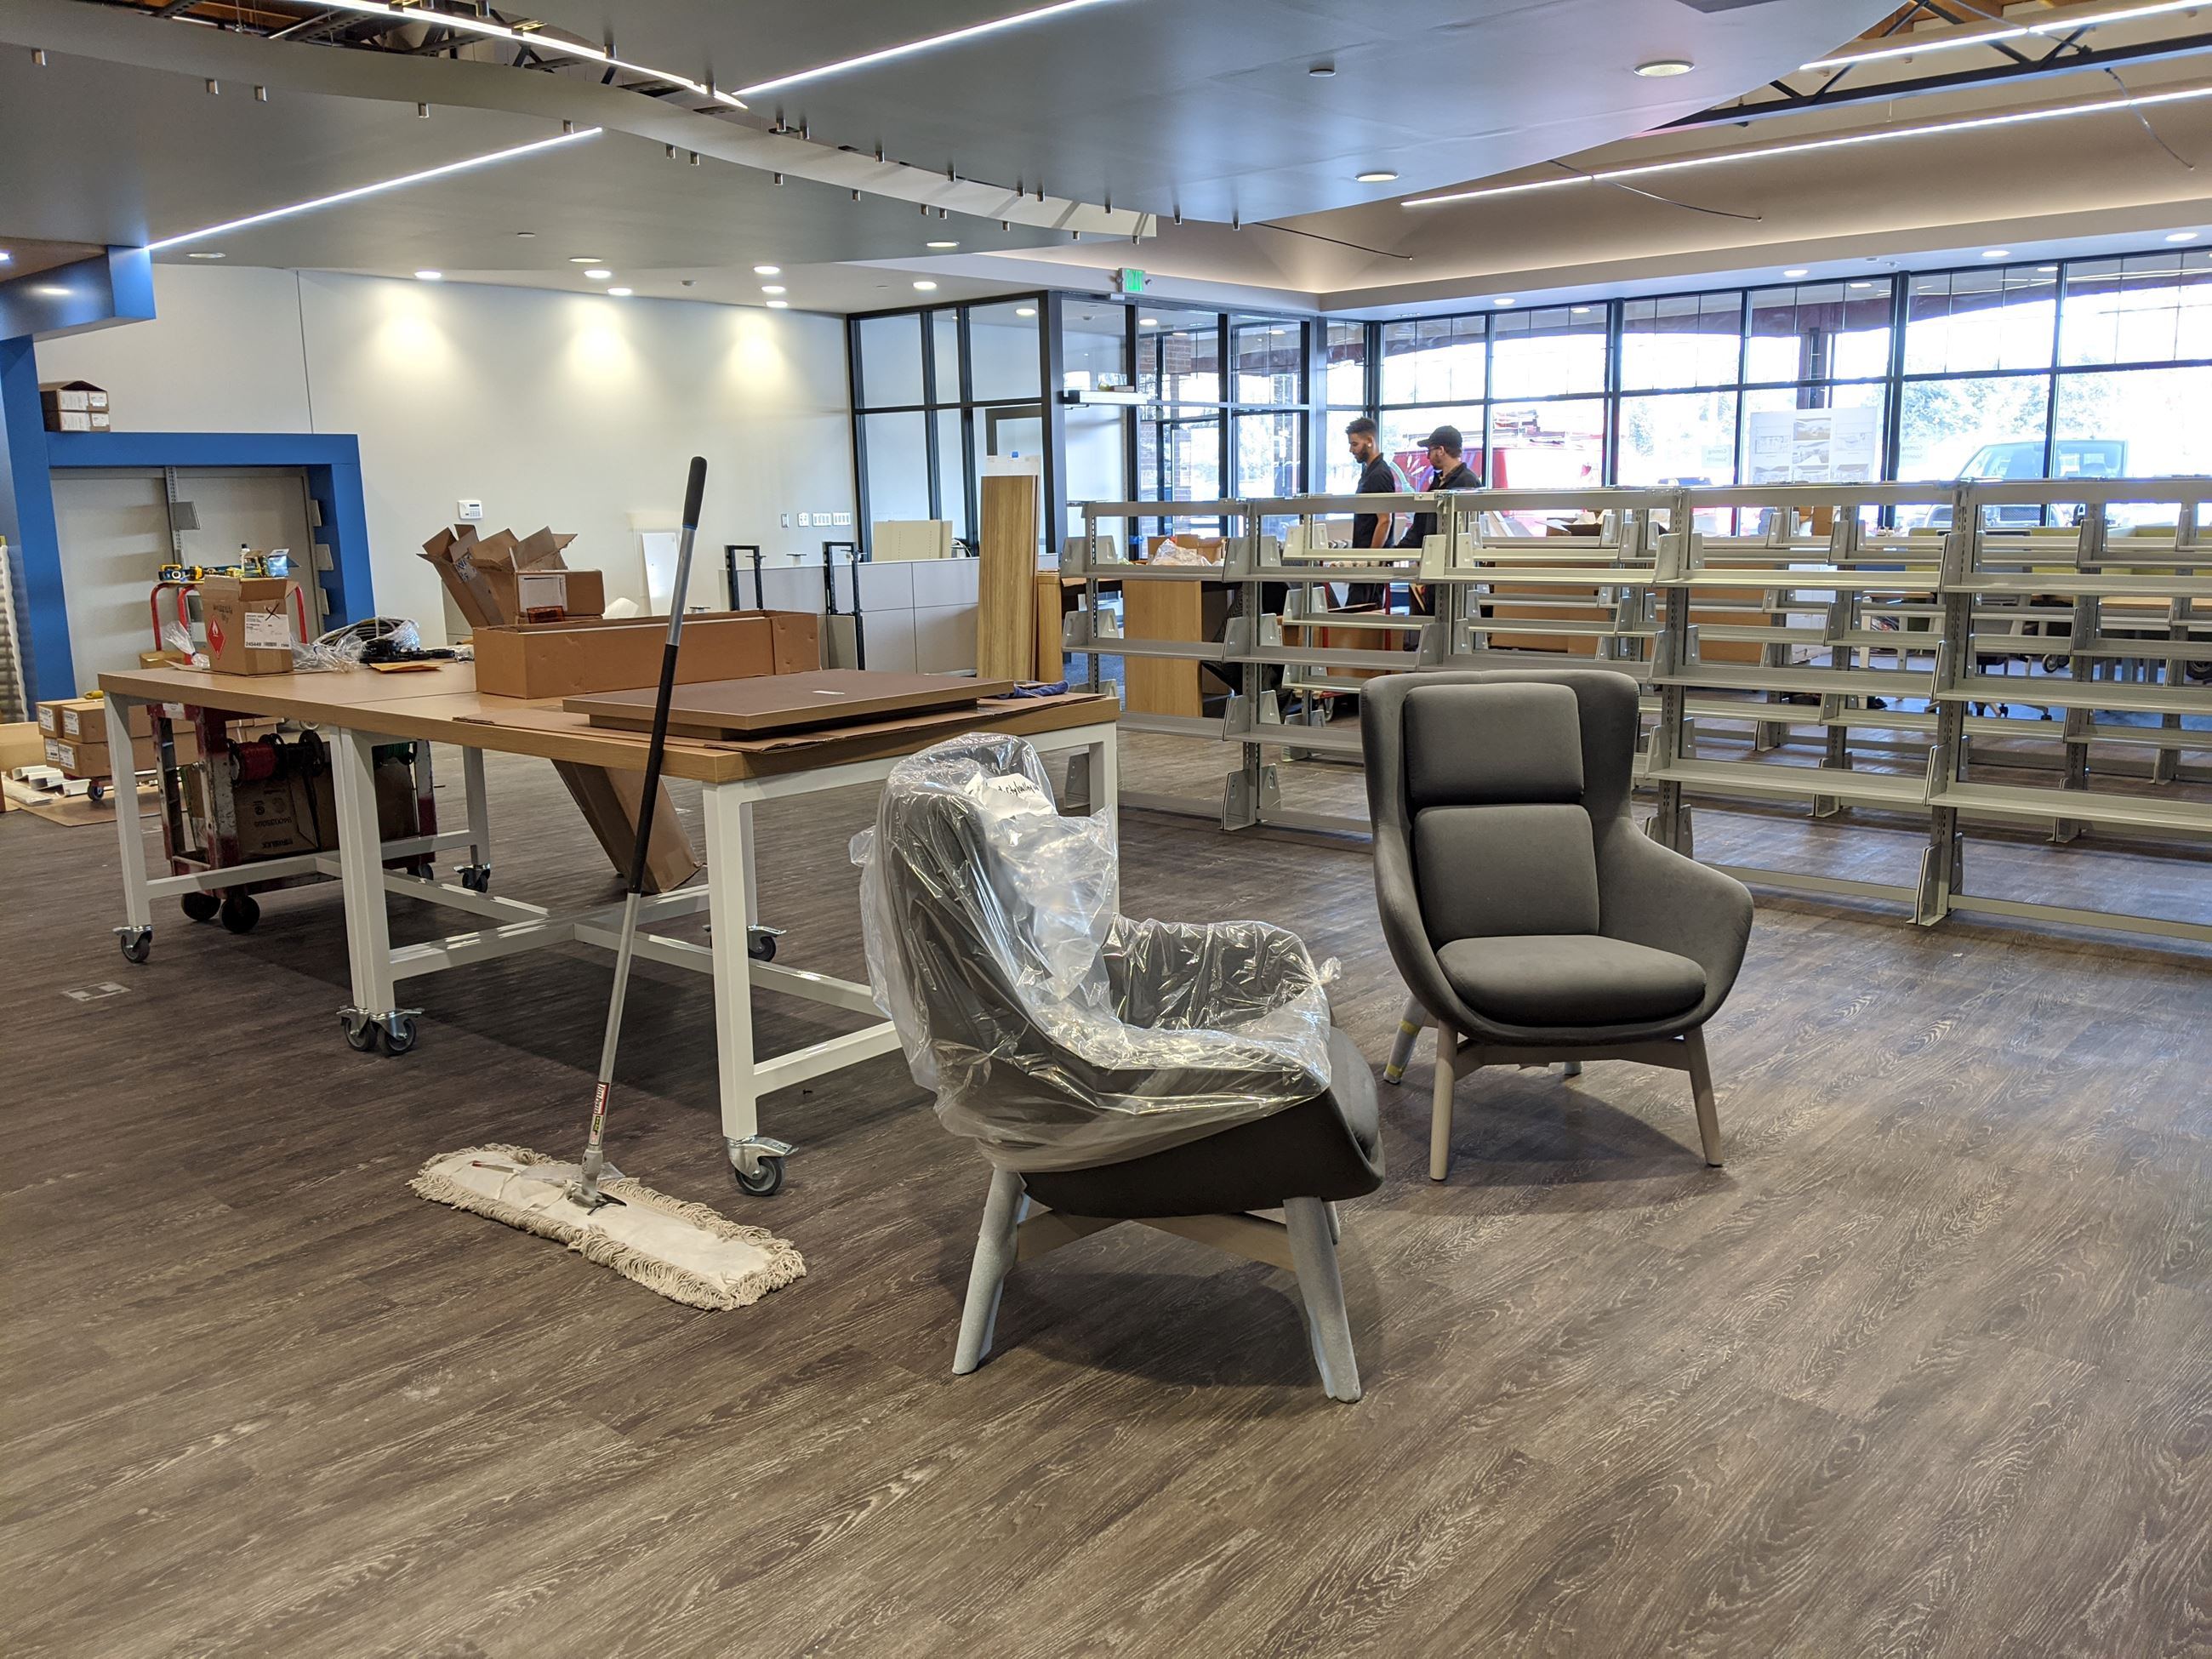 valley library renovation december 2019